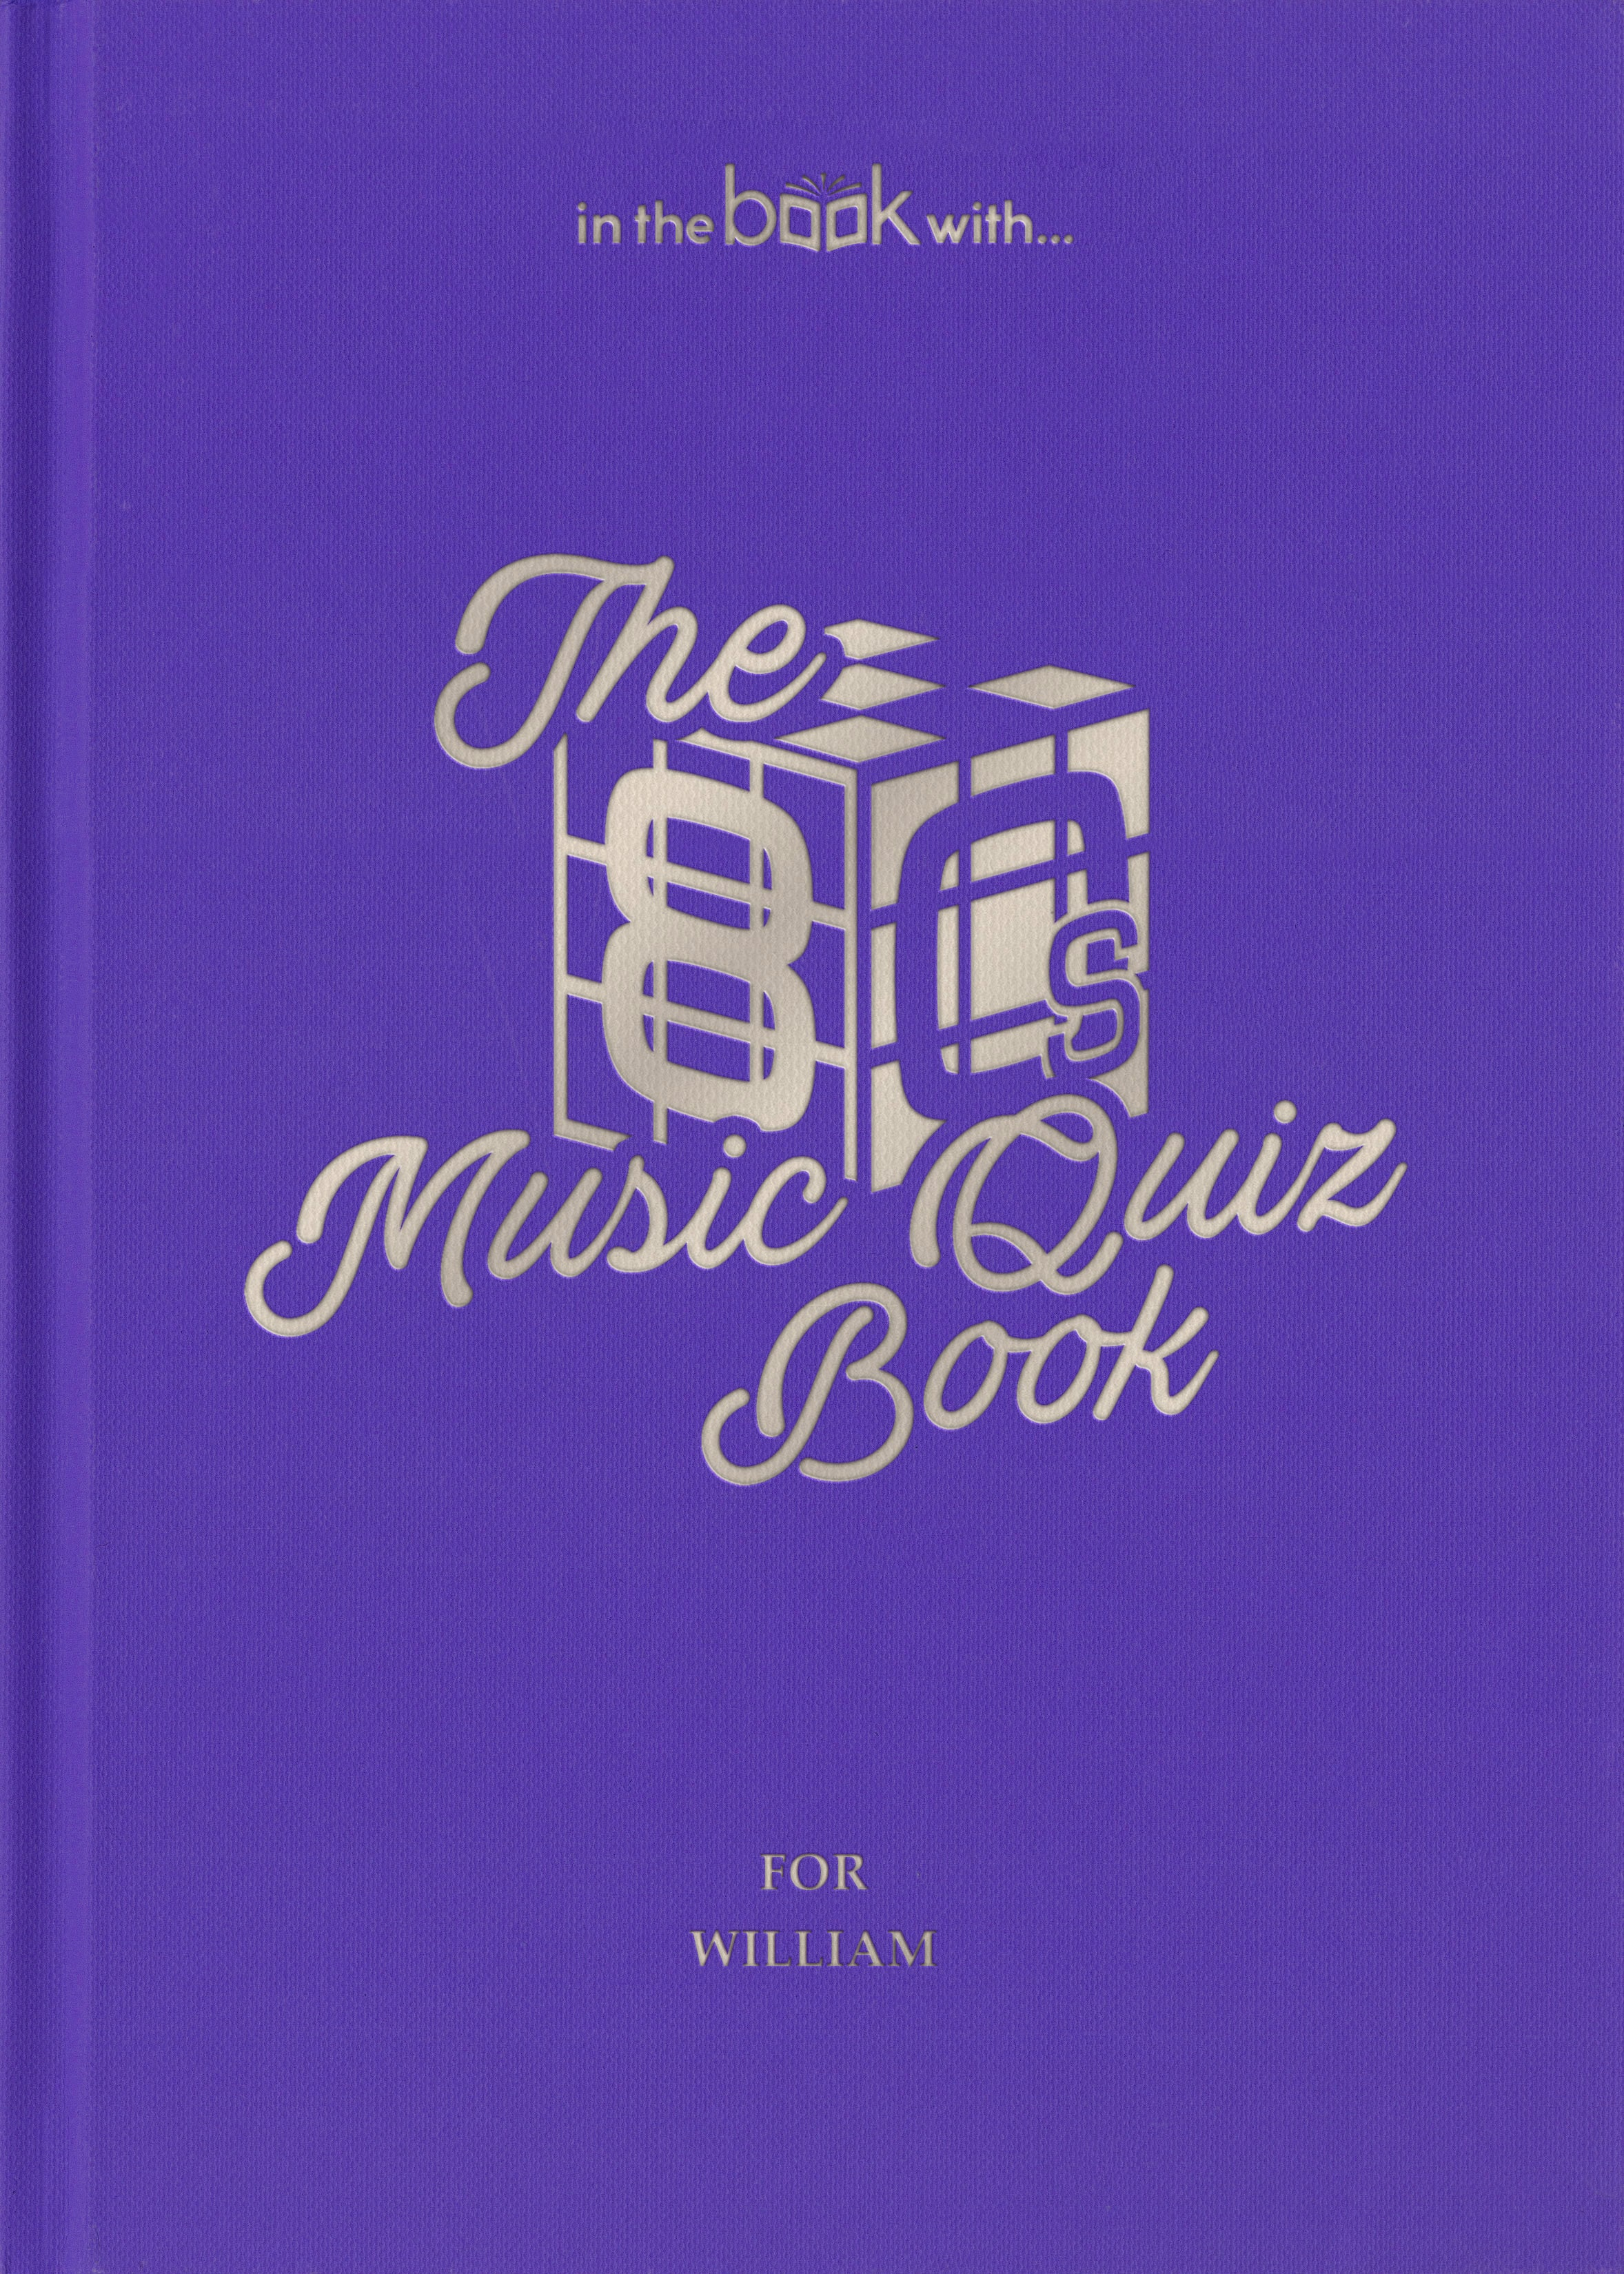 80s personalized music book